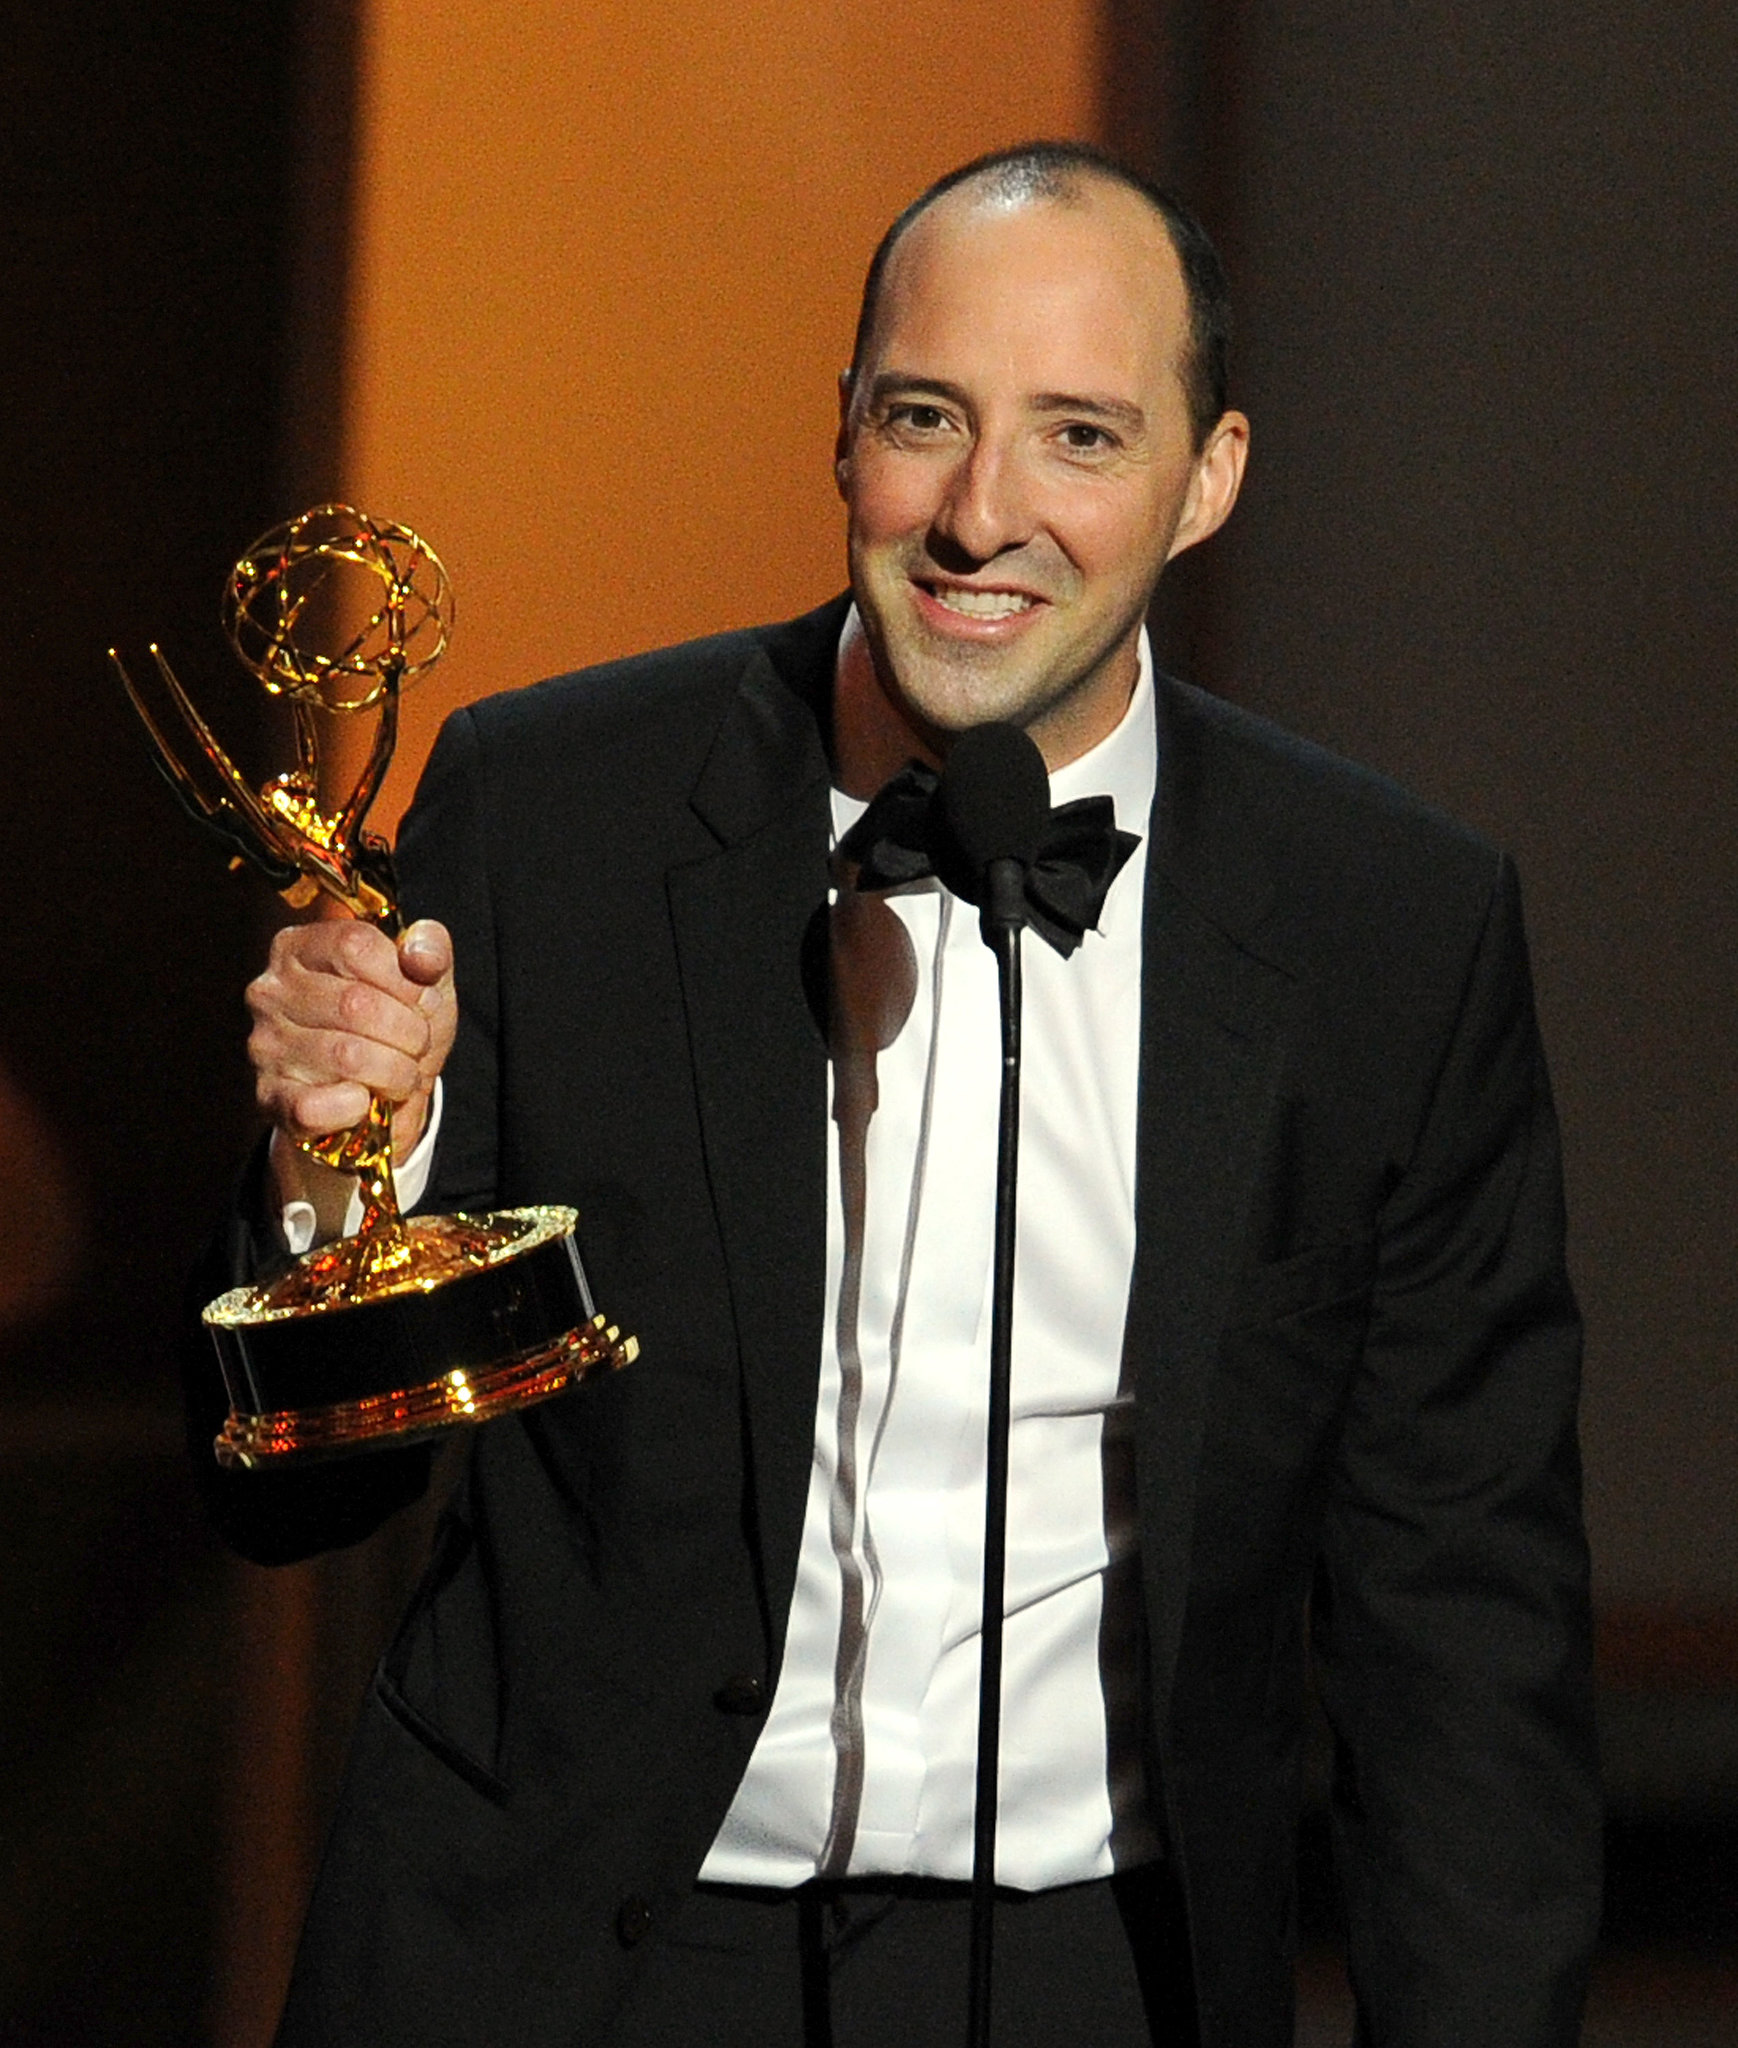 Tony Hale accepted the award for best supporting actor in